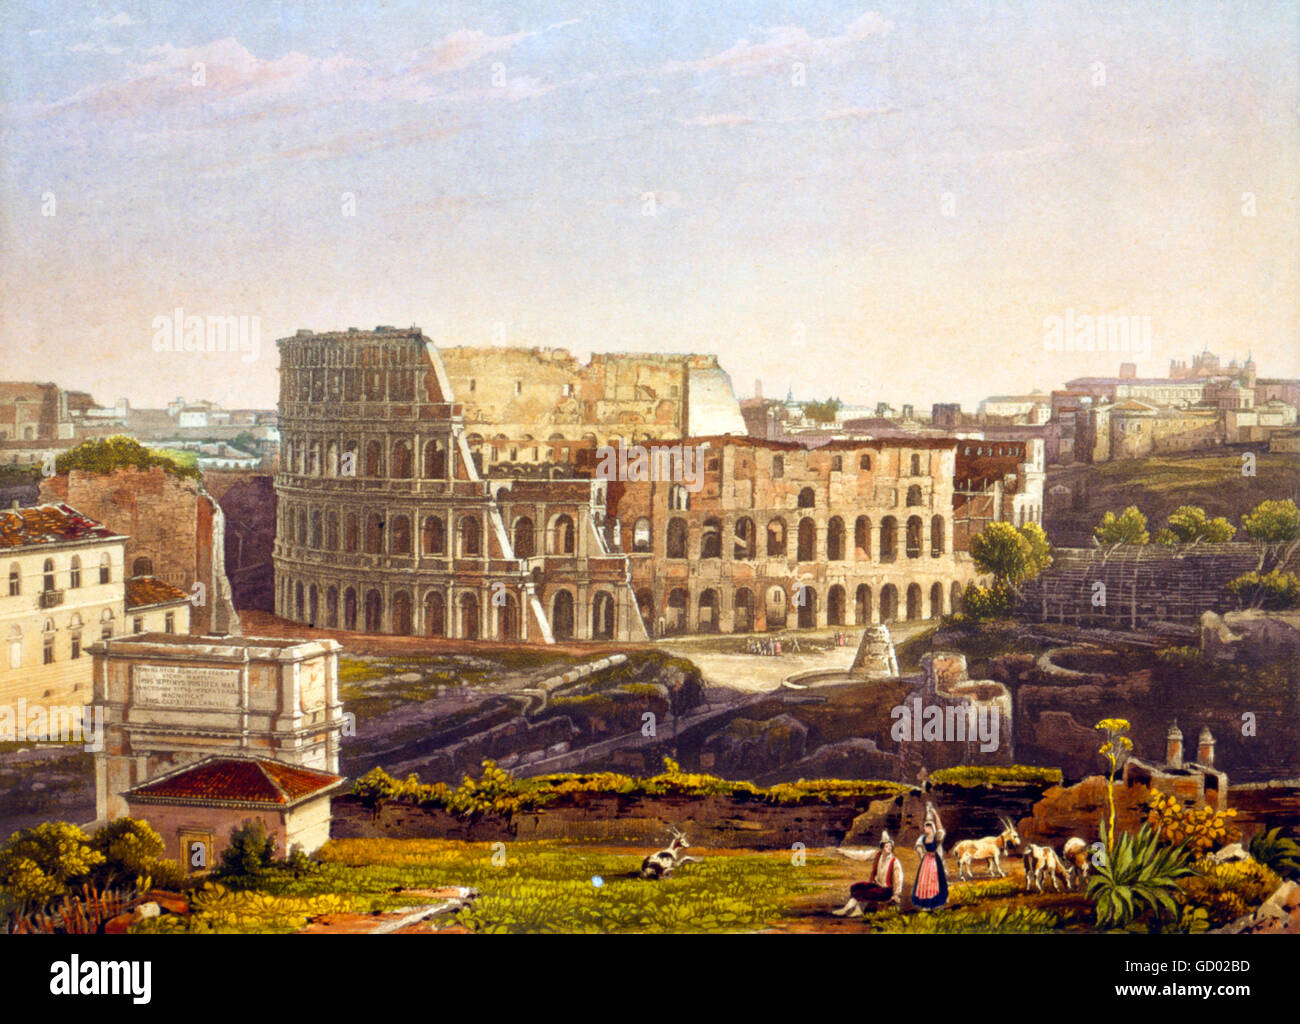 Colosseum, Rome. 19th century view of the Colosseum in Rome. Etching with aquatint from a daguerrotype by Noël - Stock Image